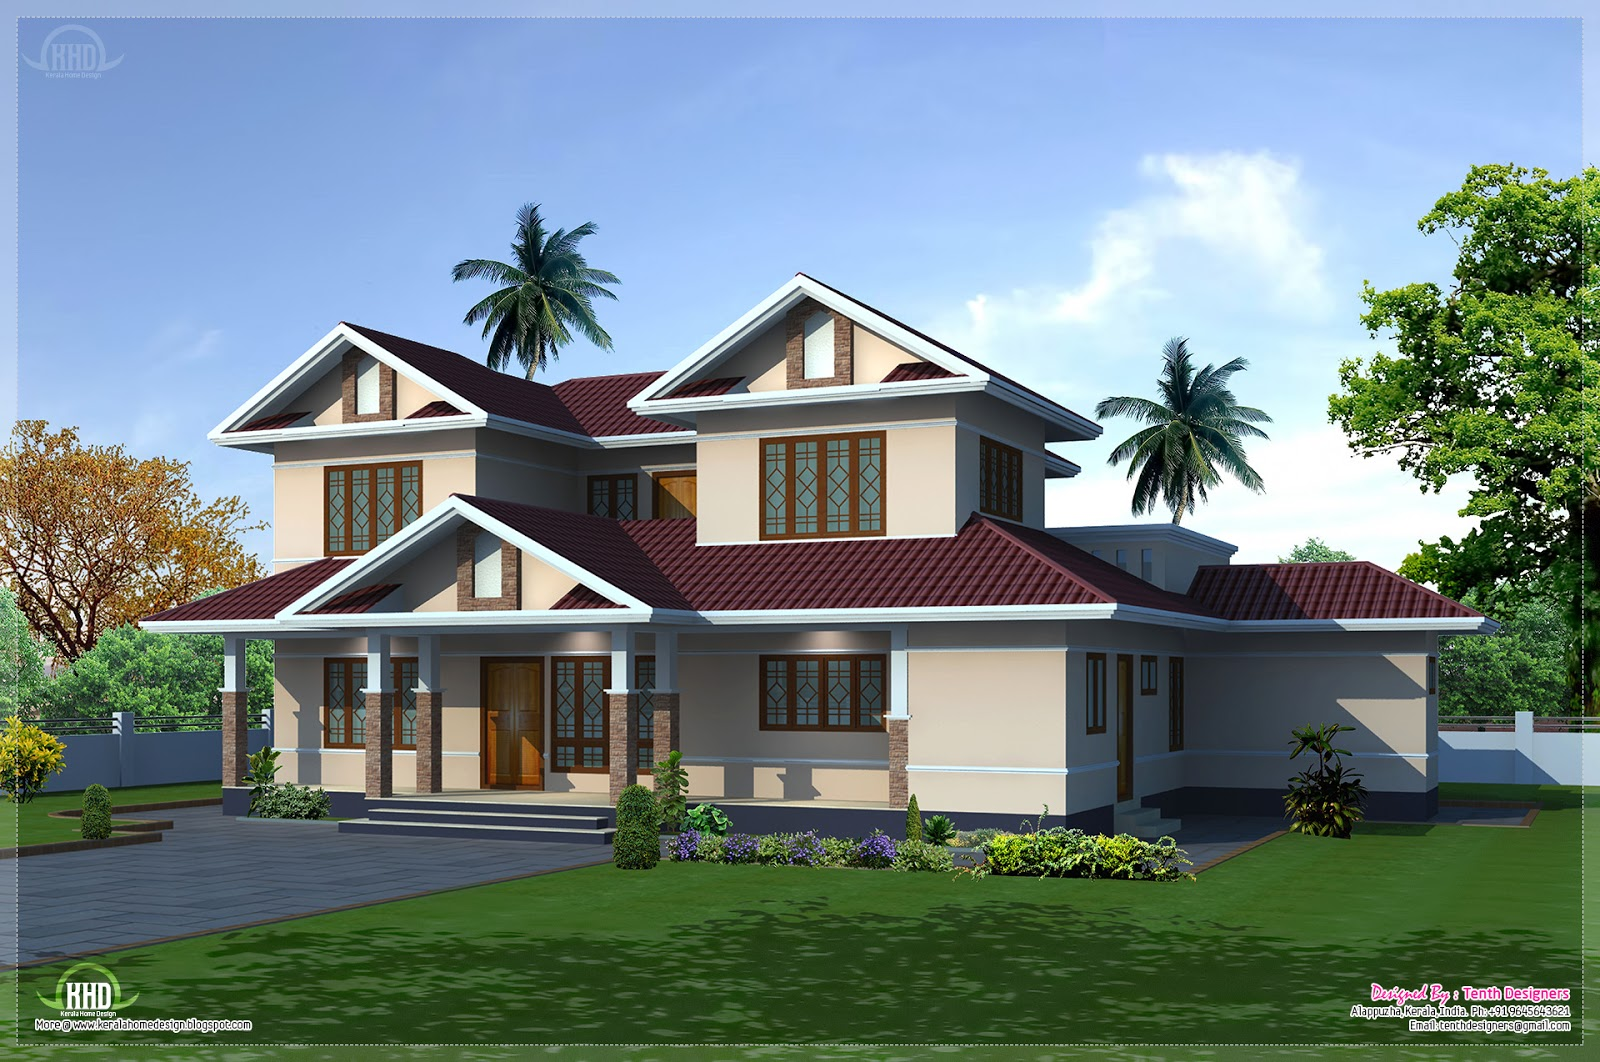 Exterior traditional house plans exterior house designs for Exterior house plans